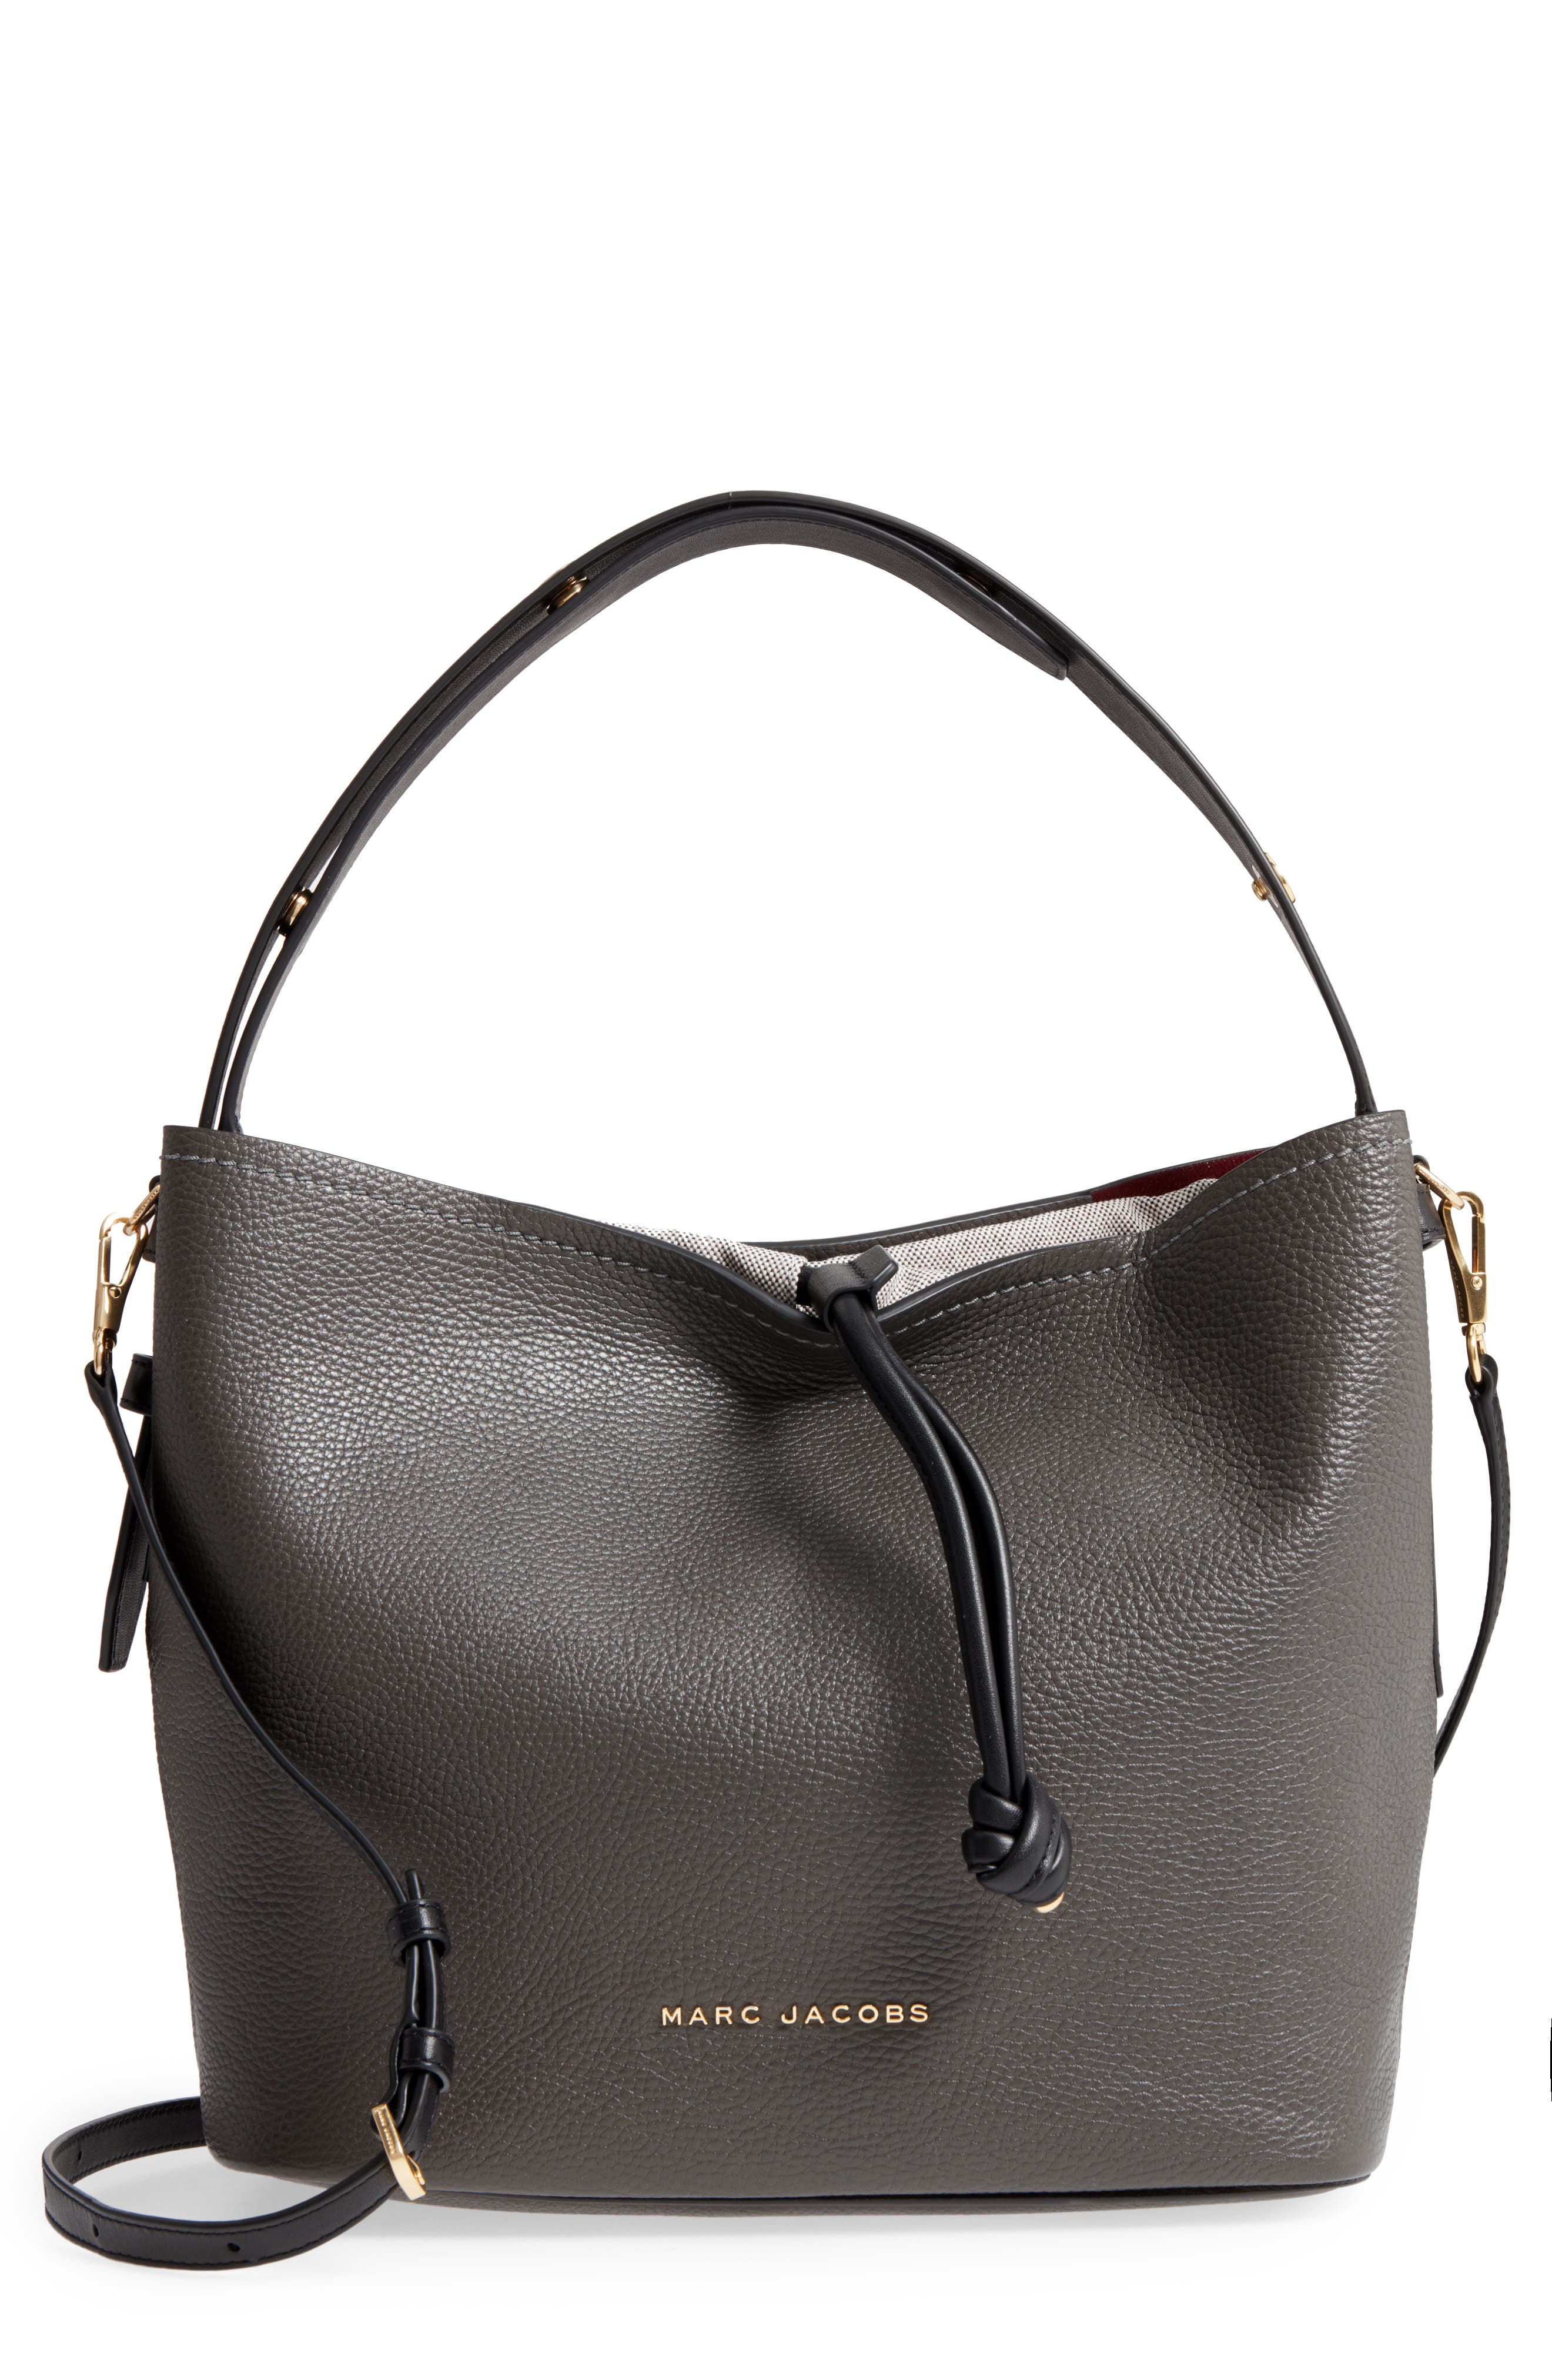 Main Image - MARC JACOBS Road Leather Hobo